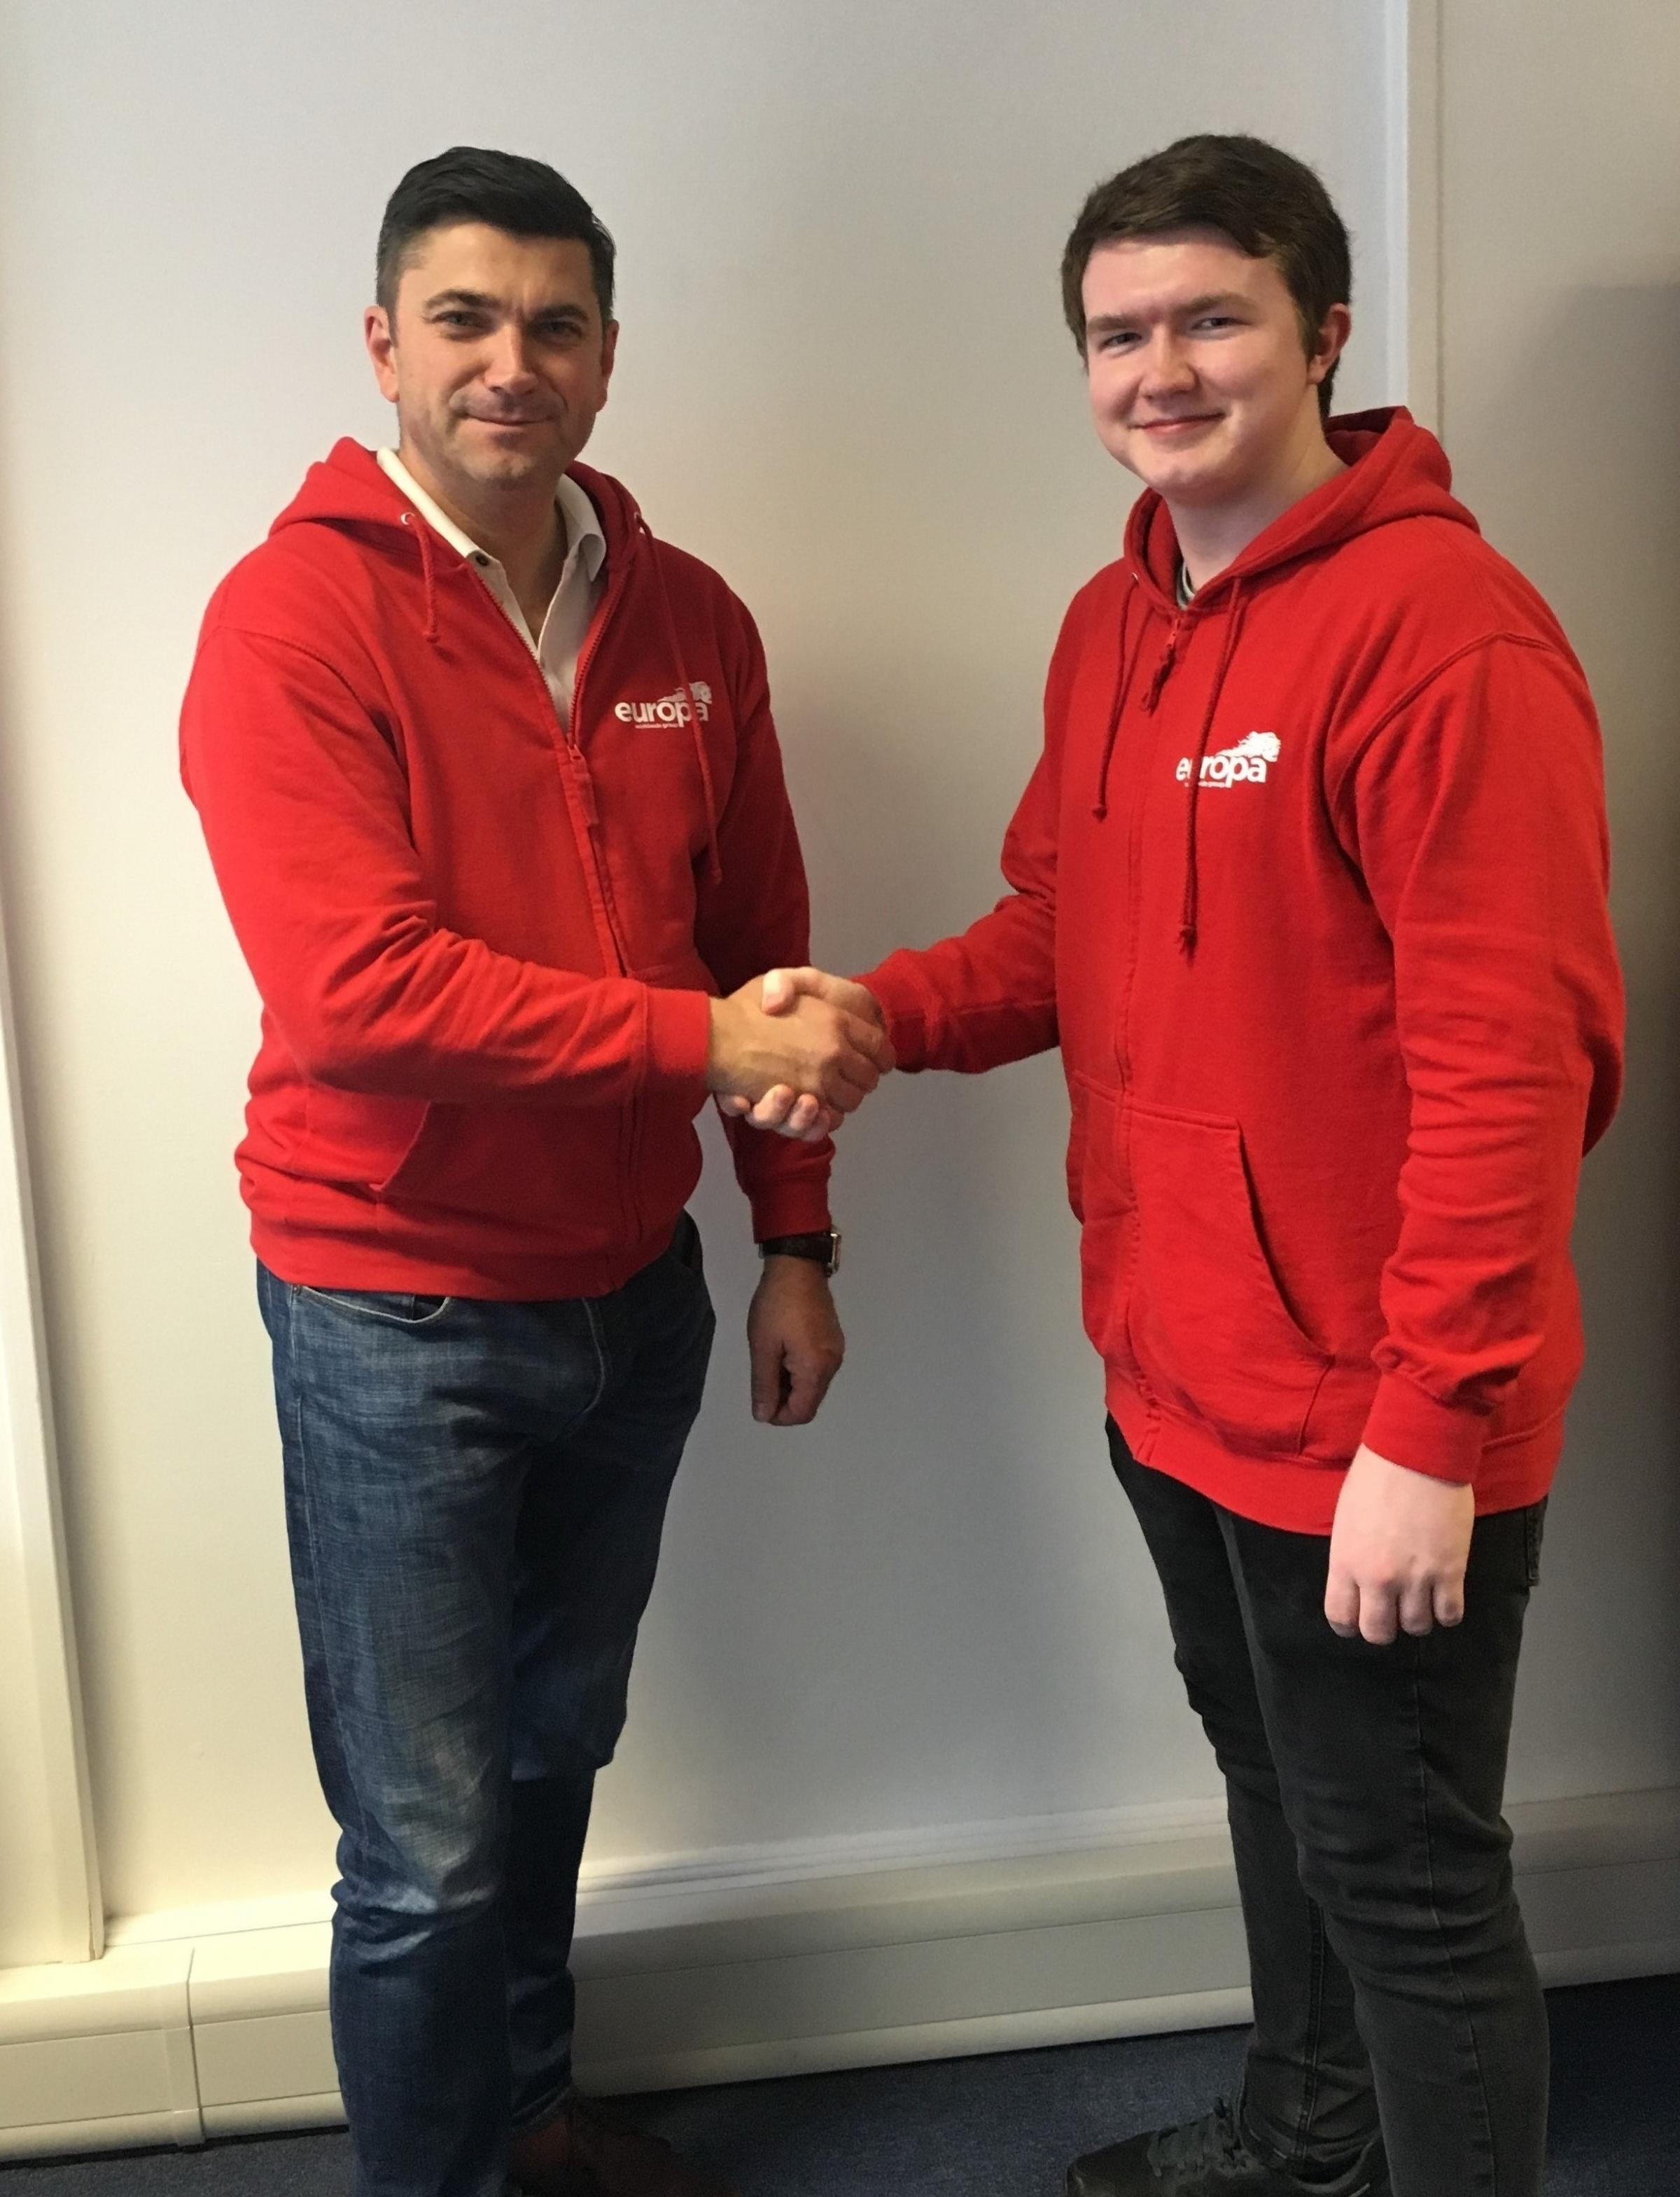 Europa branch manager John Moy welcomes school leaver Joe Tuck to the firm